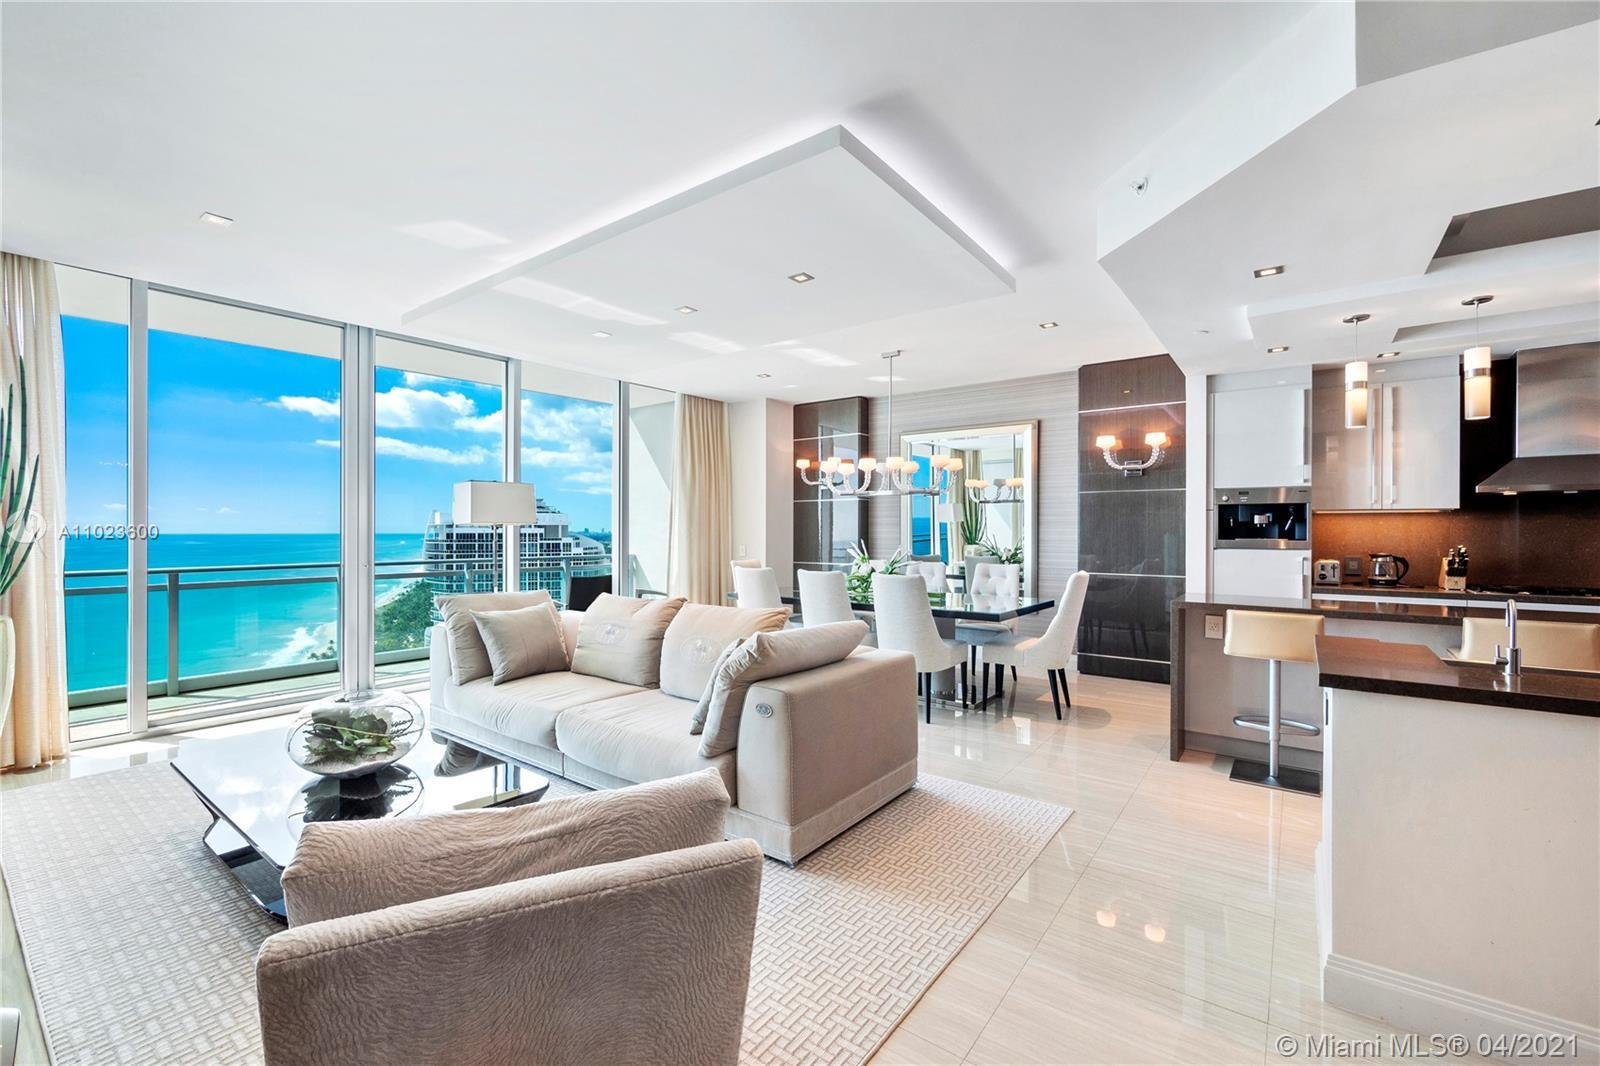 Professionally designed, turnkey 2 + Den/3 bedroom at One Bal Harbour. Direct and panoramic views fr